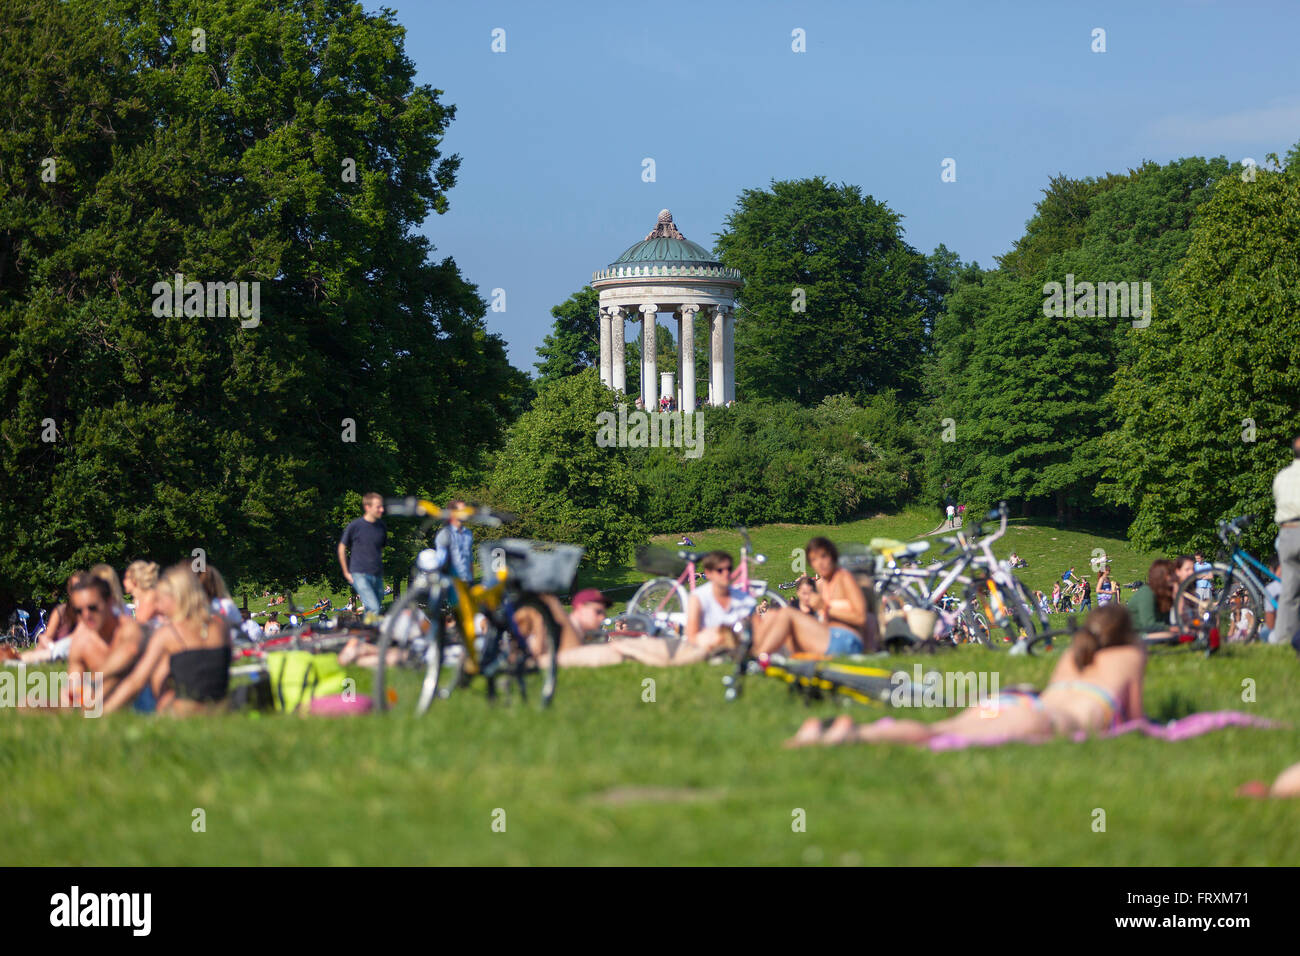 summer in the english garden with monopteros englischer garten stock photo 100775557 alamy. Black Bedroom Furniture Sets. Home Design Ideas